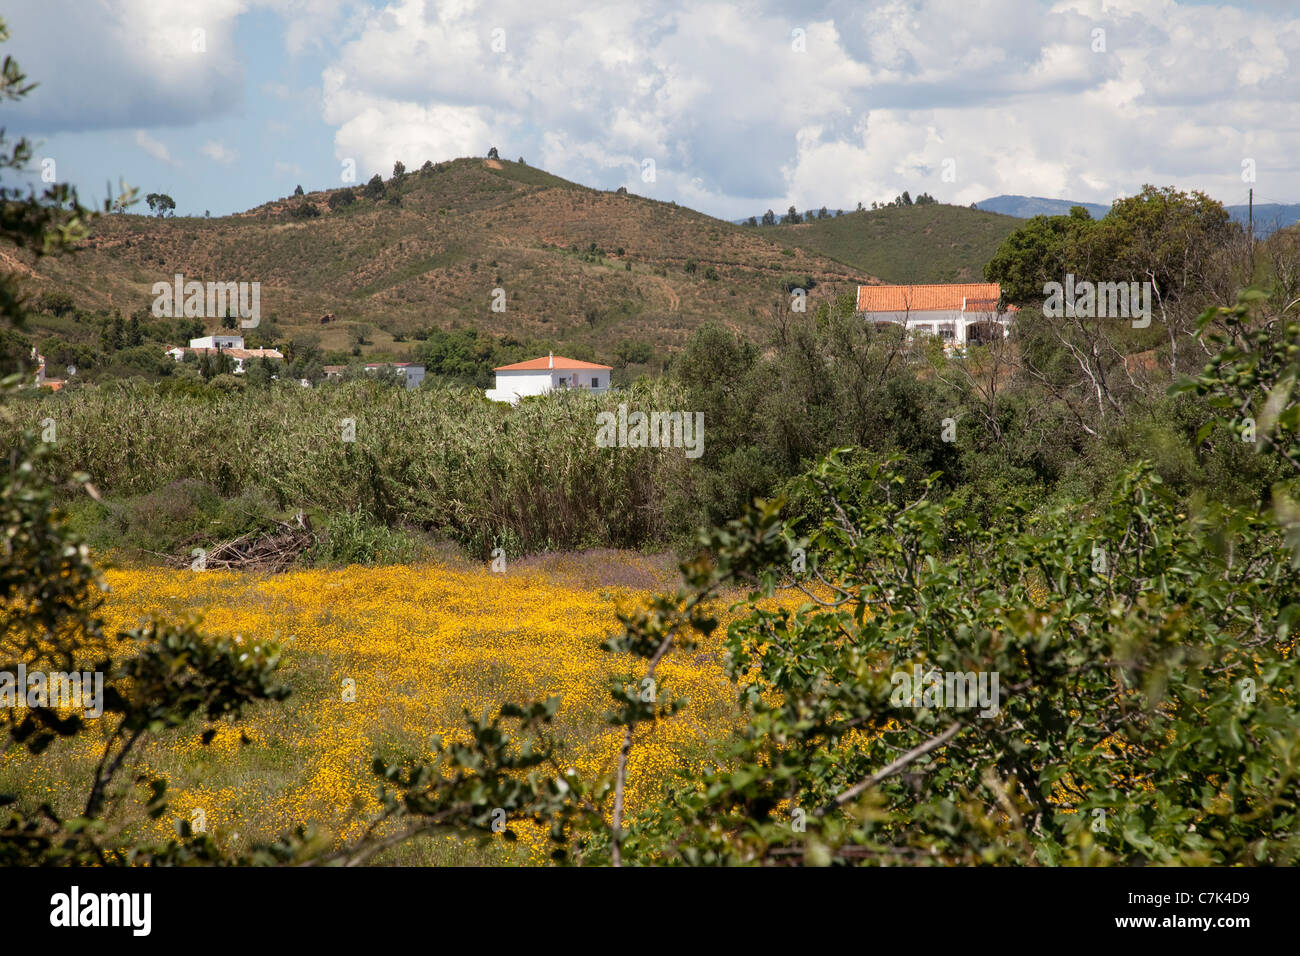 Portugal, Algarve, Near Silves, Countryside - Stock Image